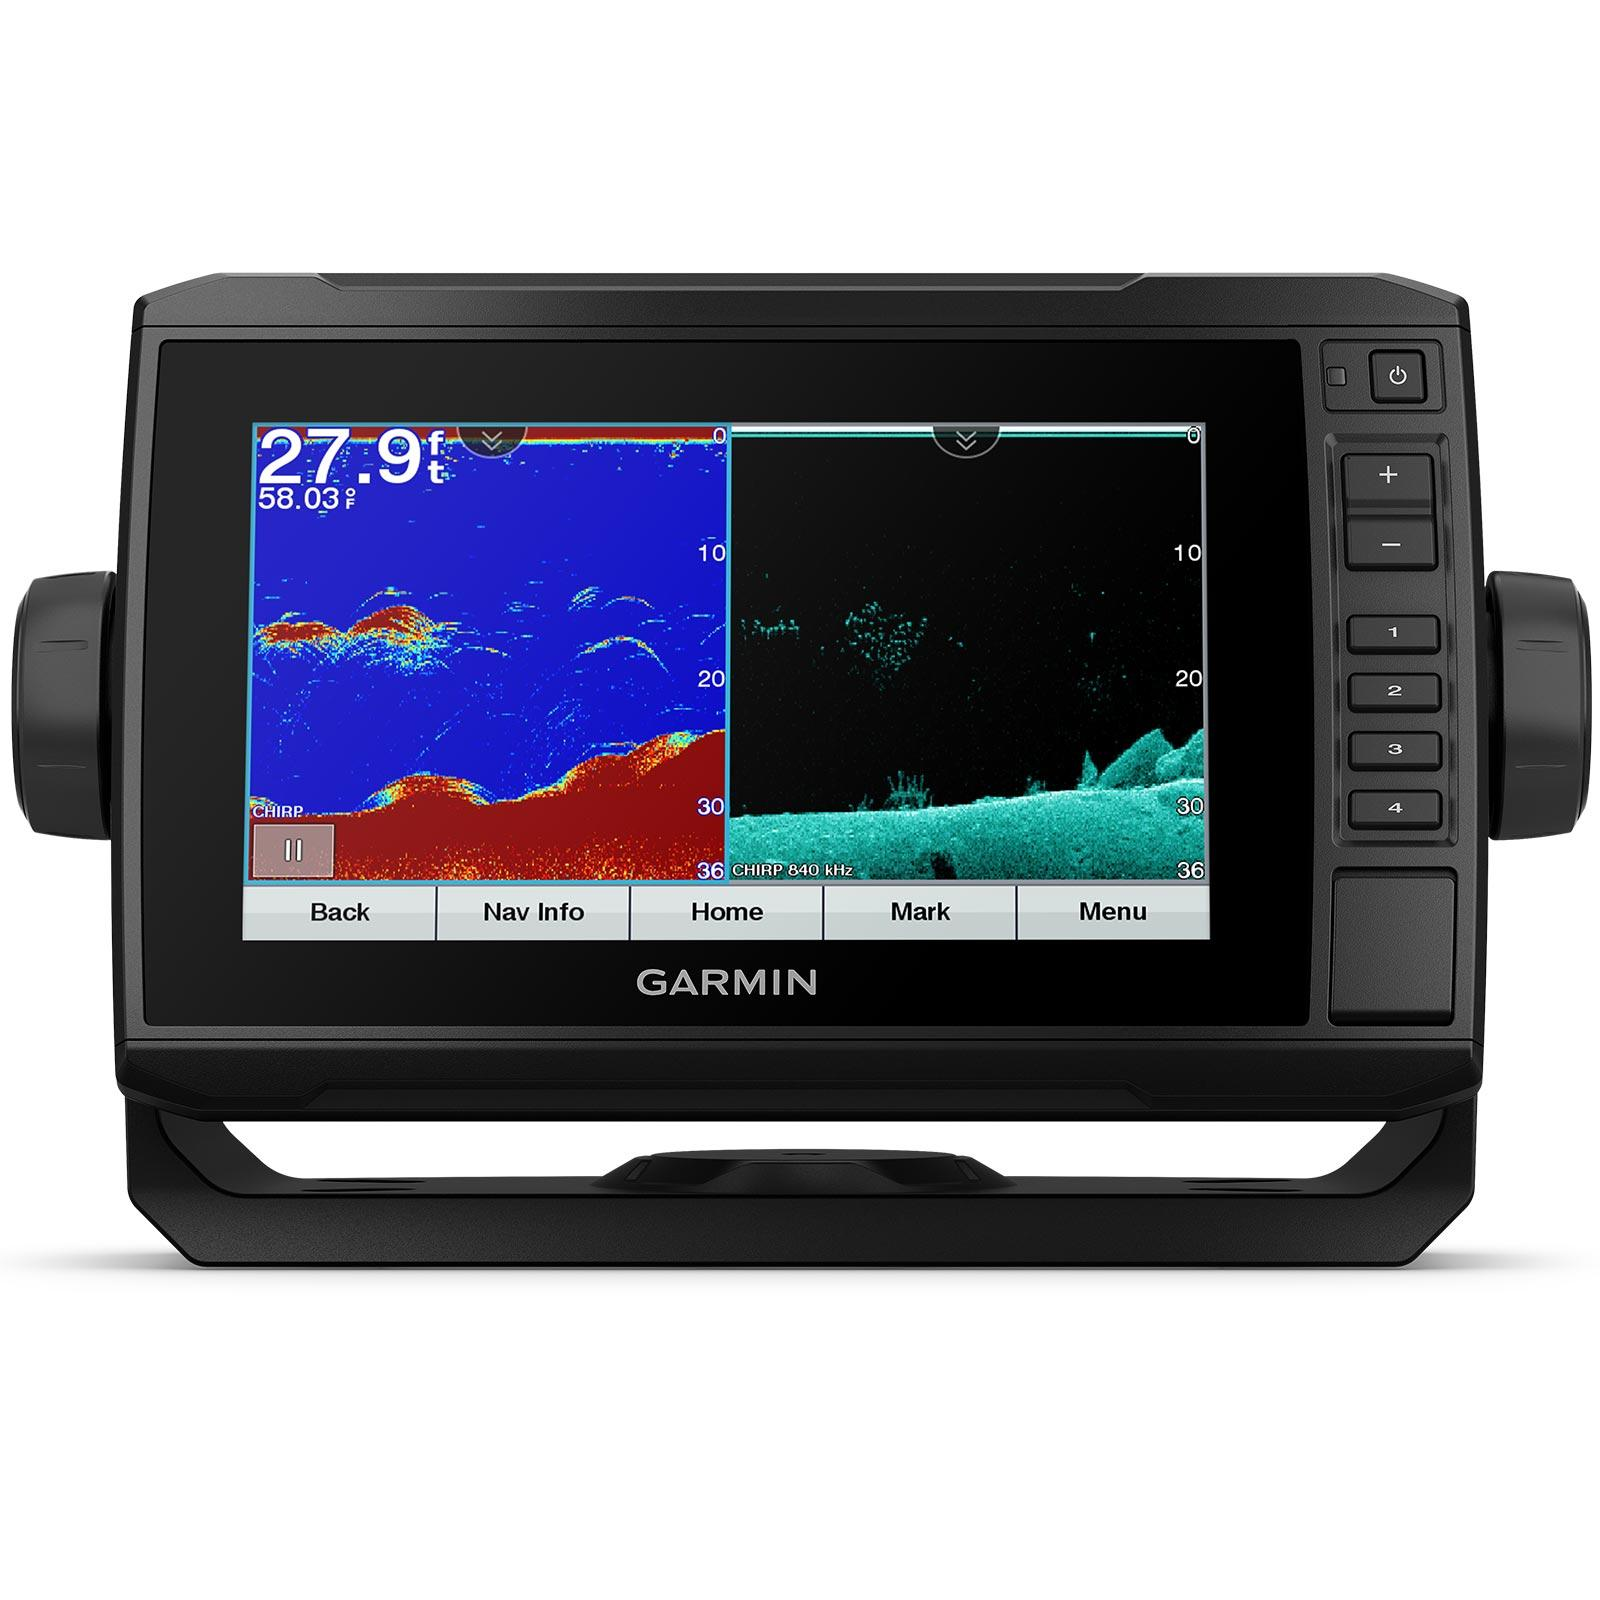 Garmin ECHOMAP UHD 74sv without Transducer In Use